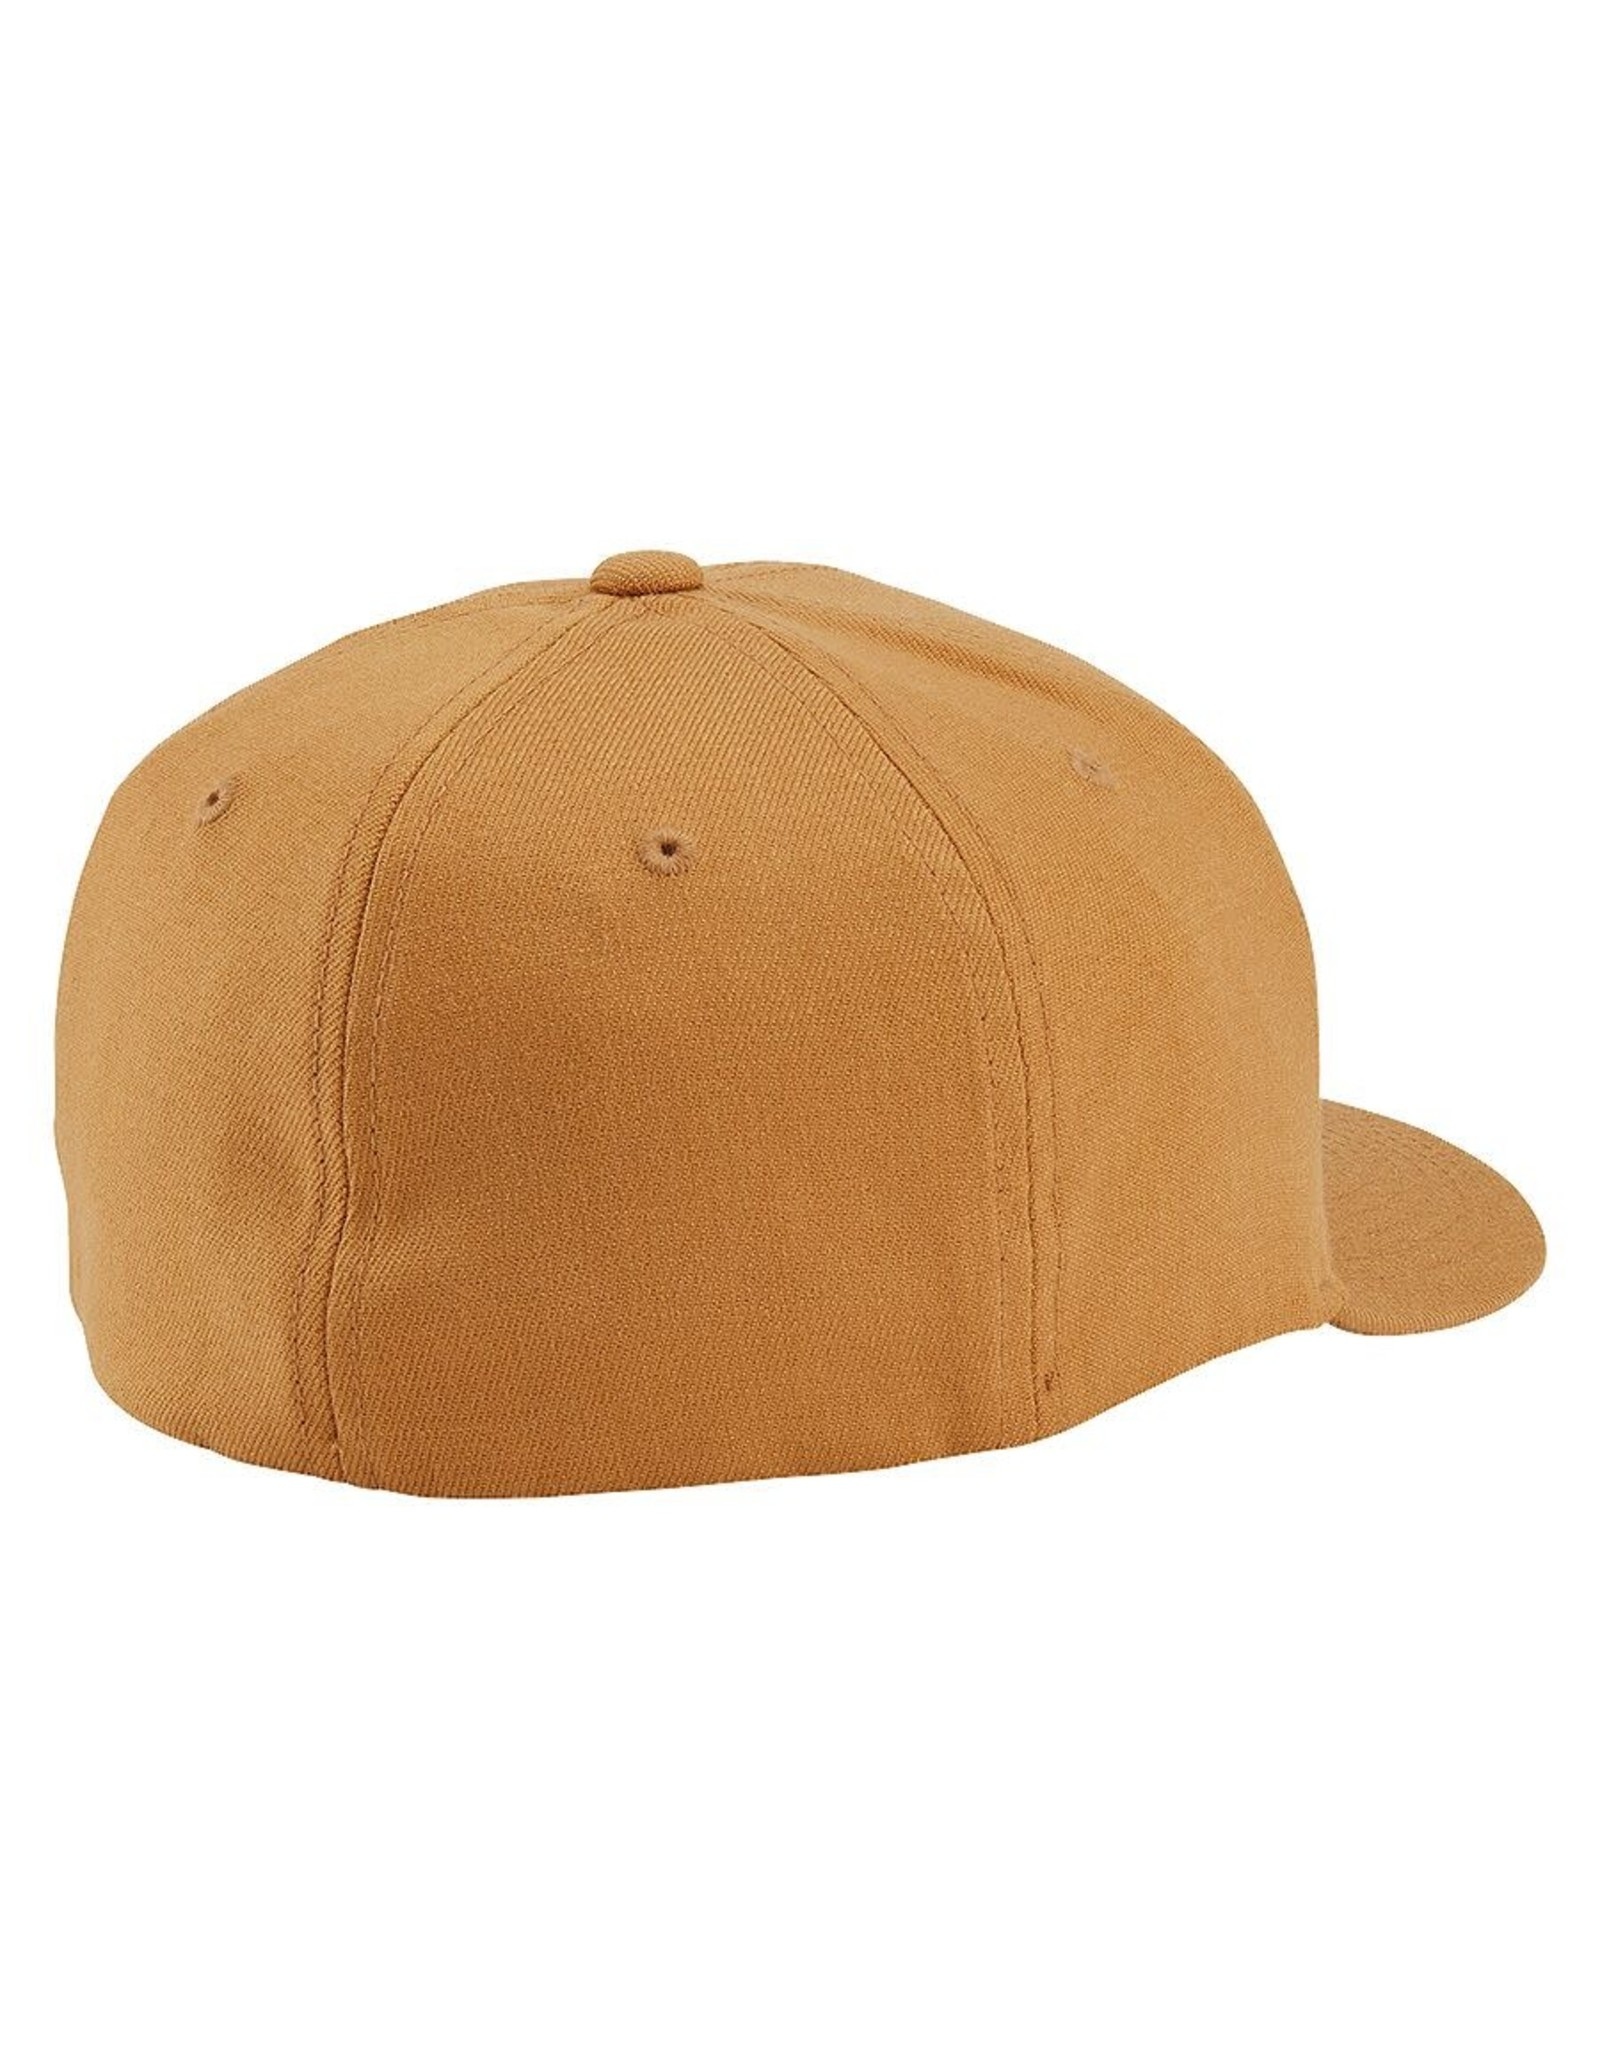 NIXON DEEP DOWN Hat, TOBACCO